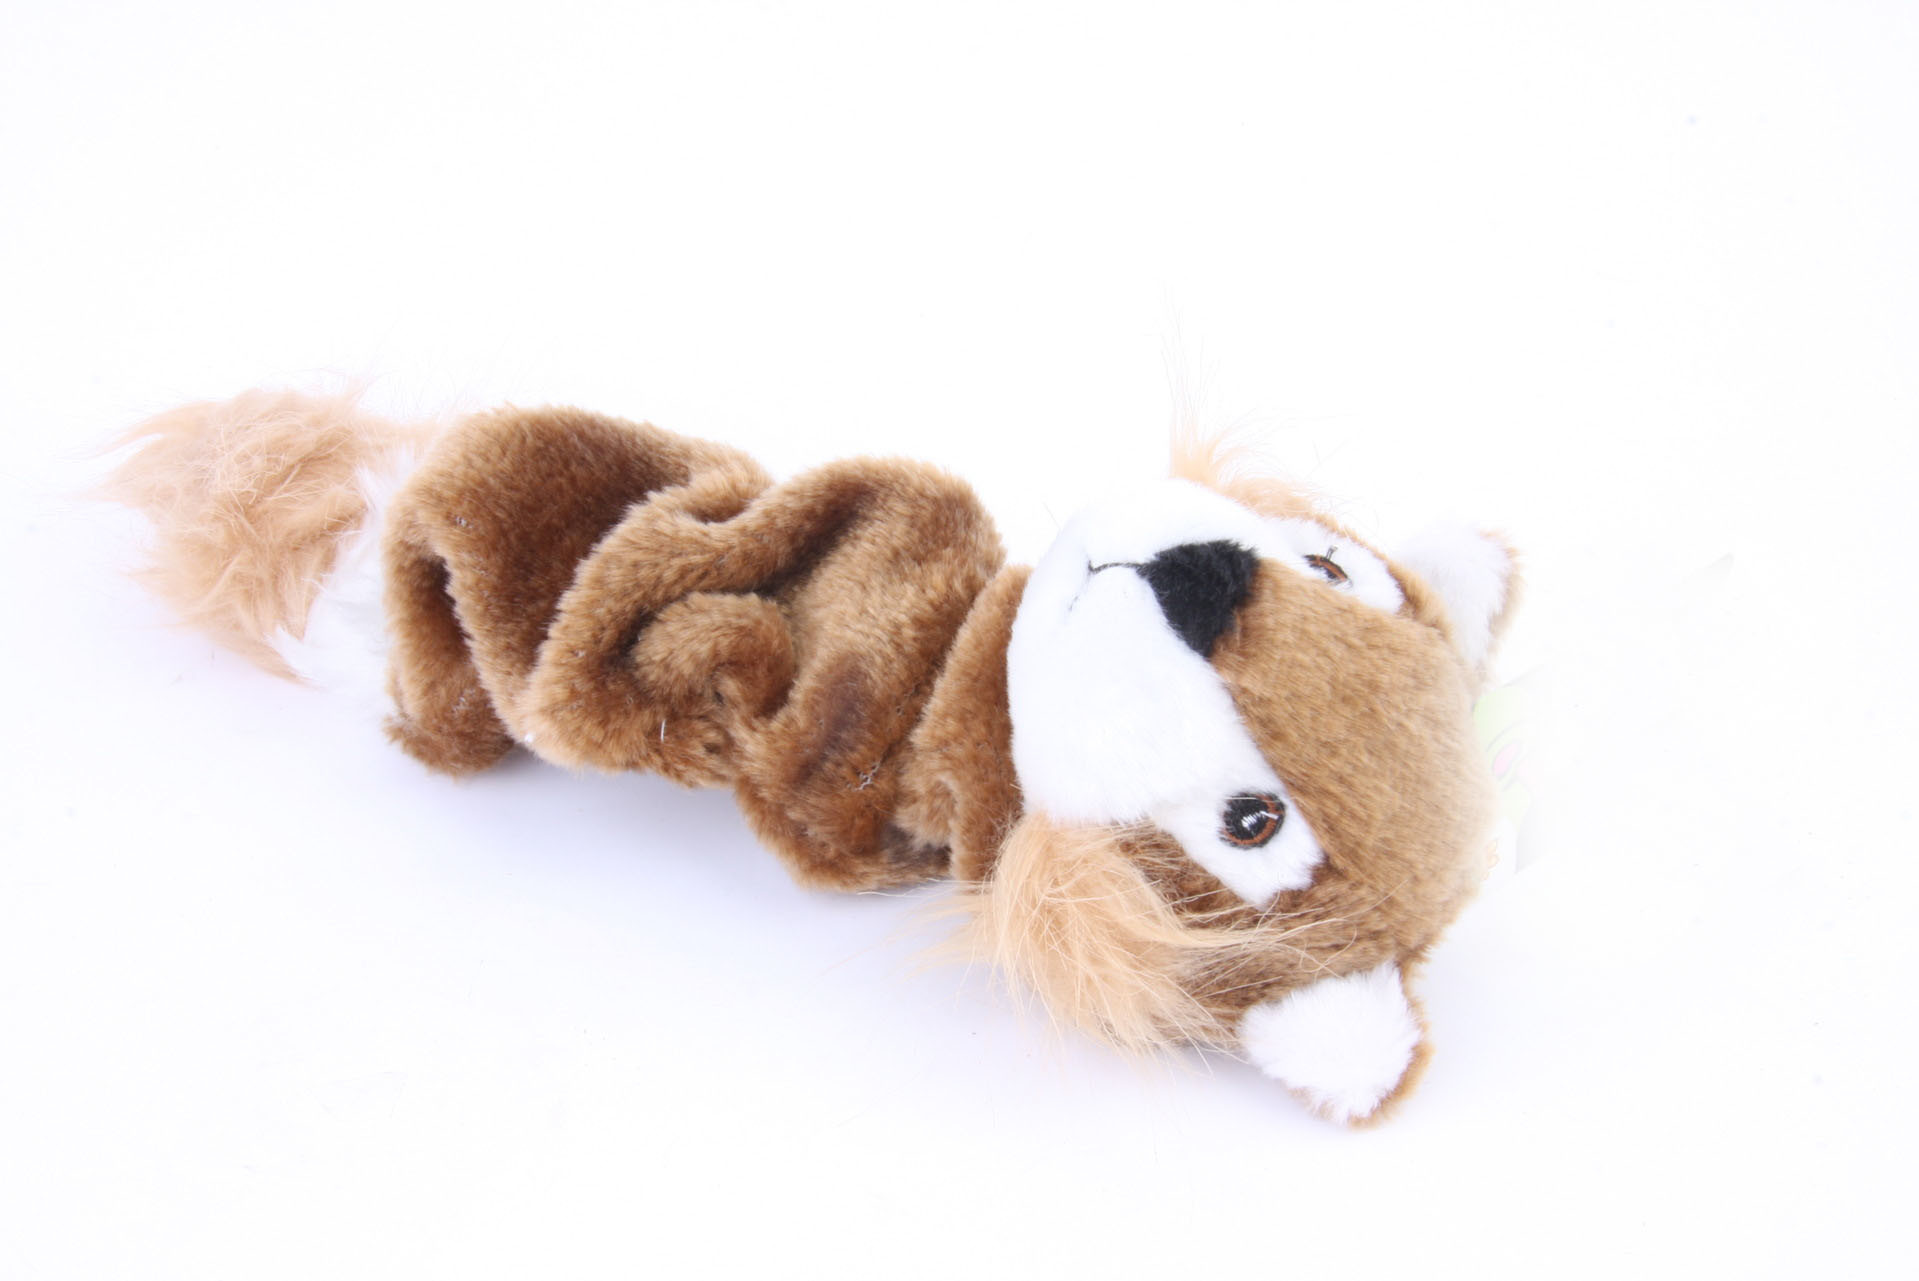 Pet Product Dog Toy for Pet to Bite and Chew